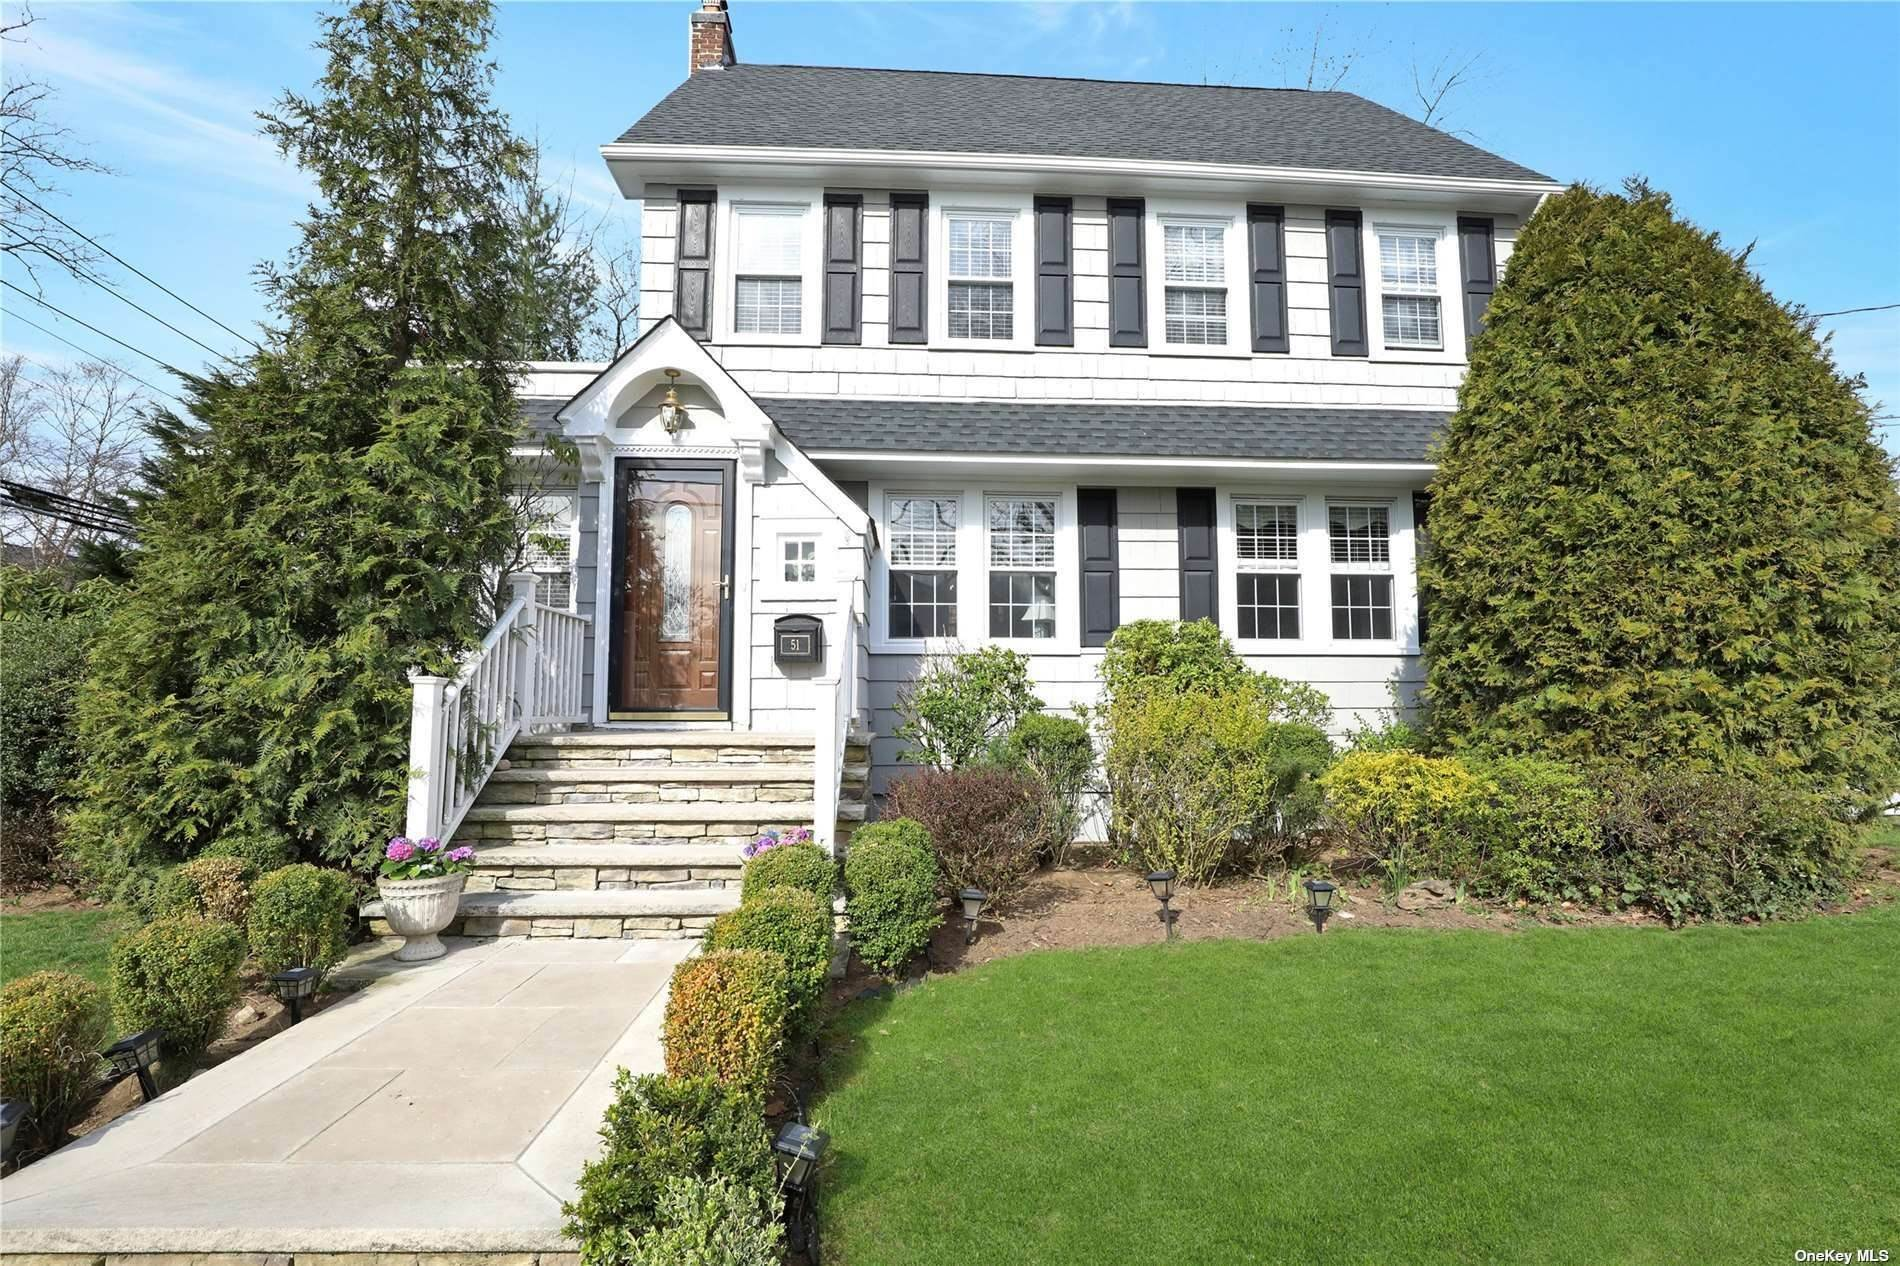 Residential for Sale at 51 Rider Avenue Malverne, New York 11565 United States